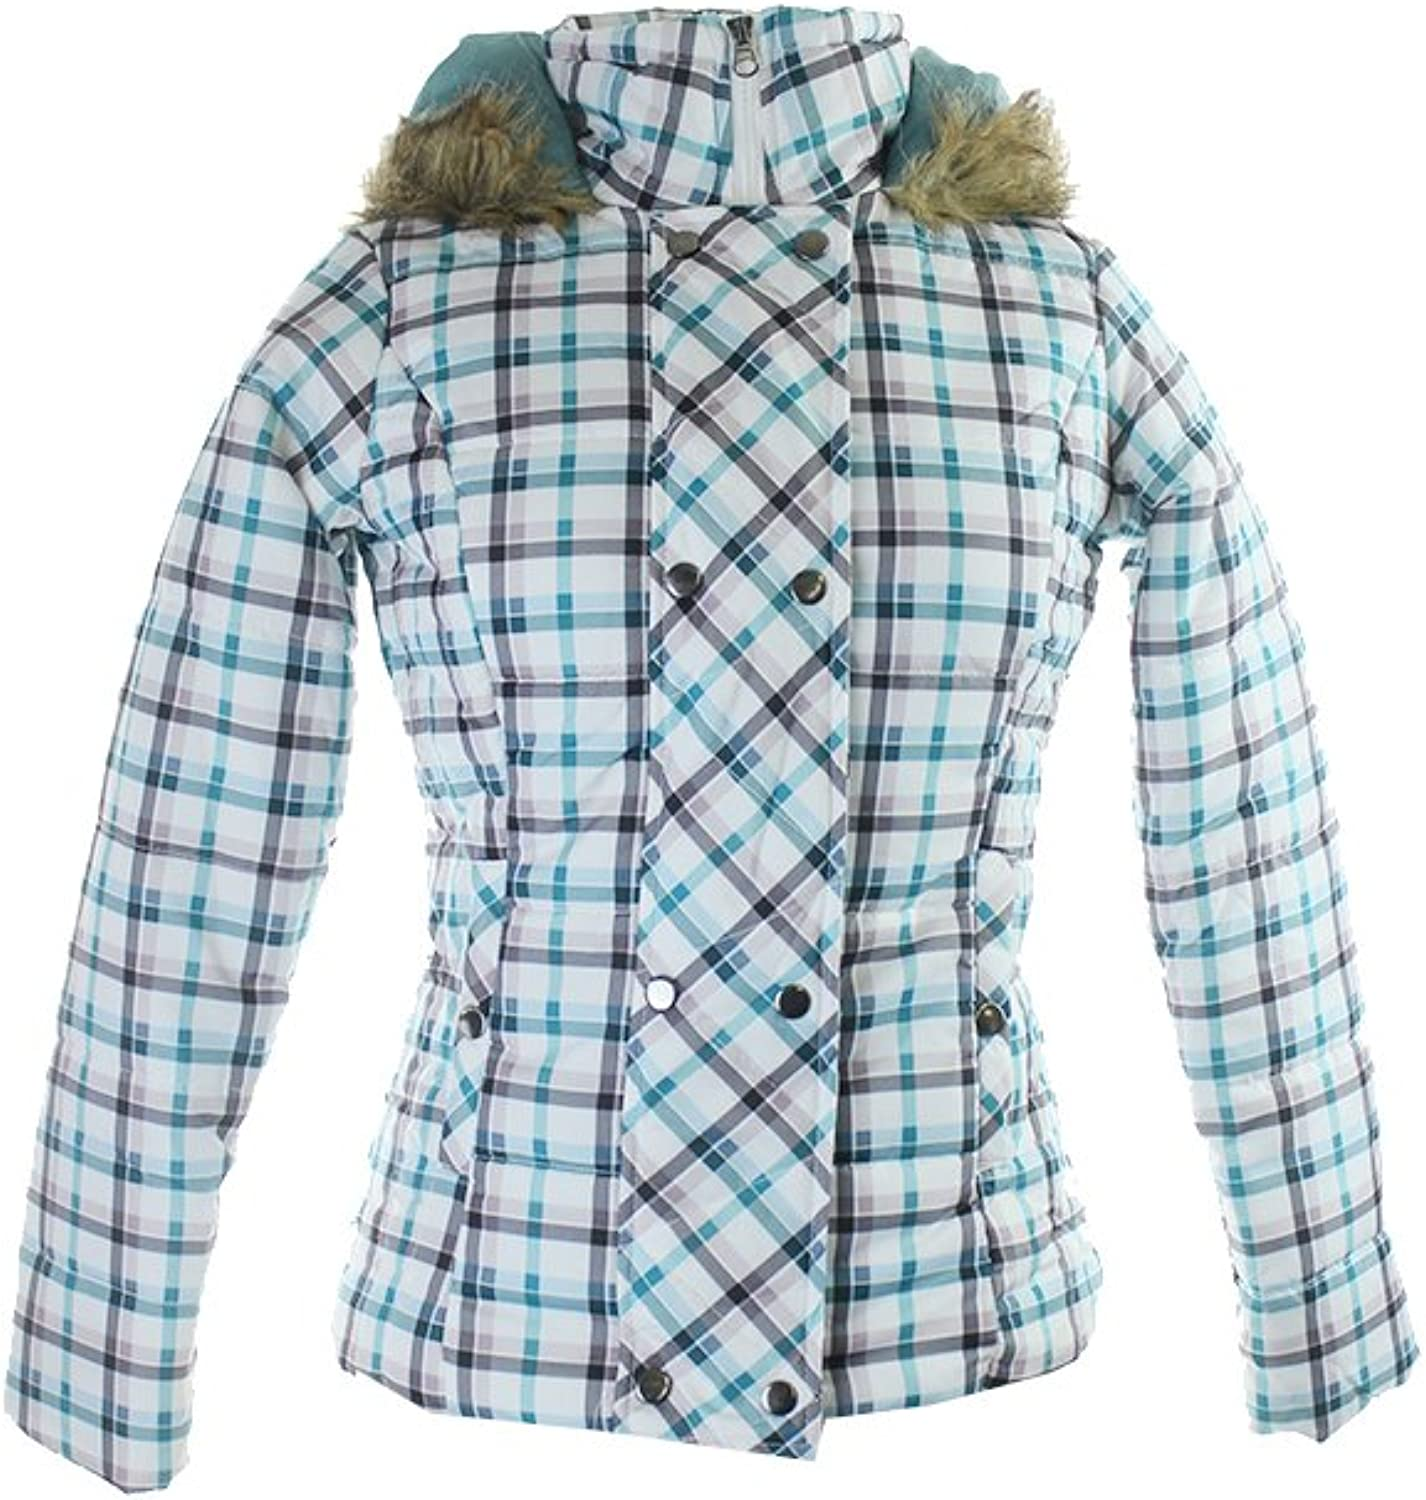 Krush Women's Hooded Double Breasted Printed Puffer Jacket